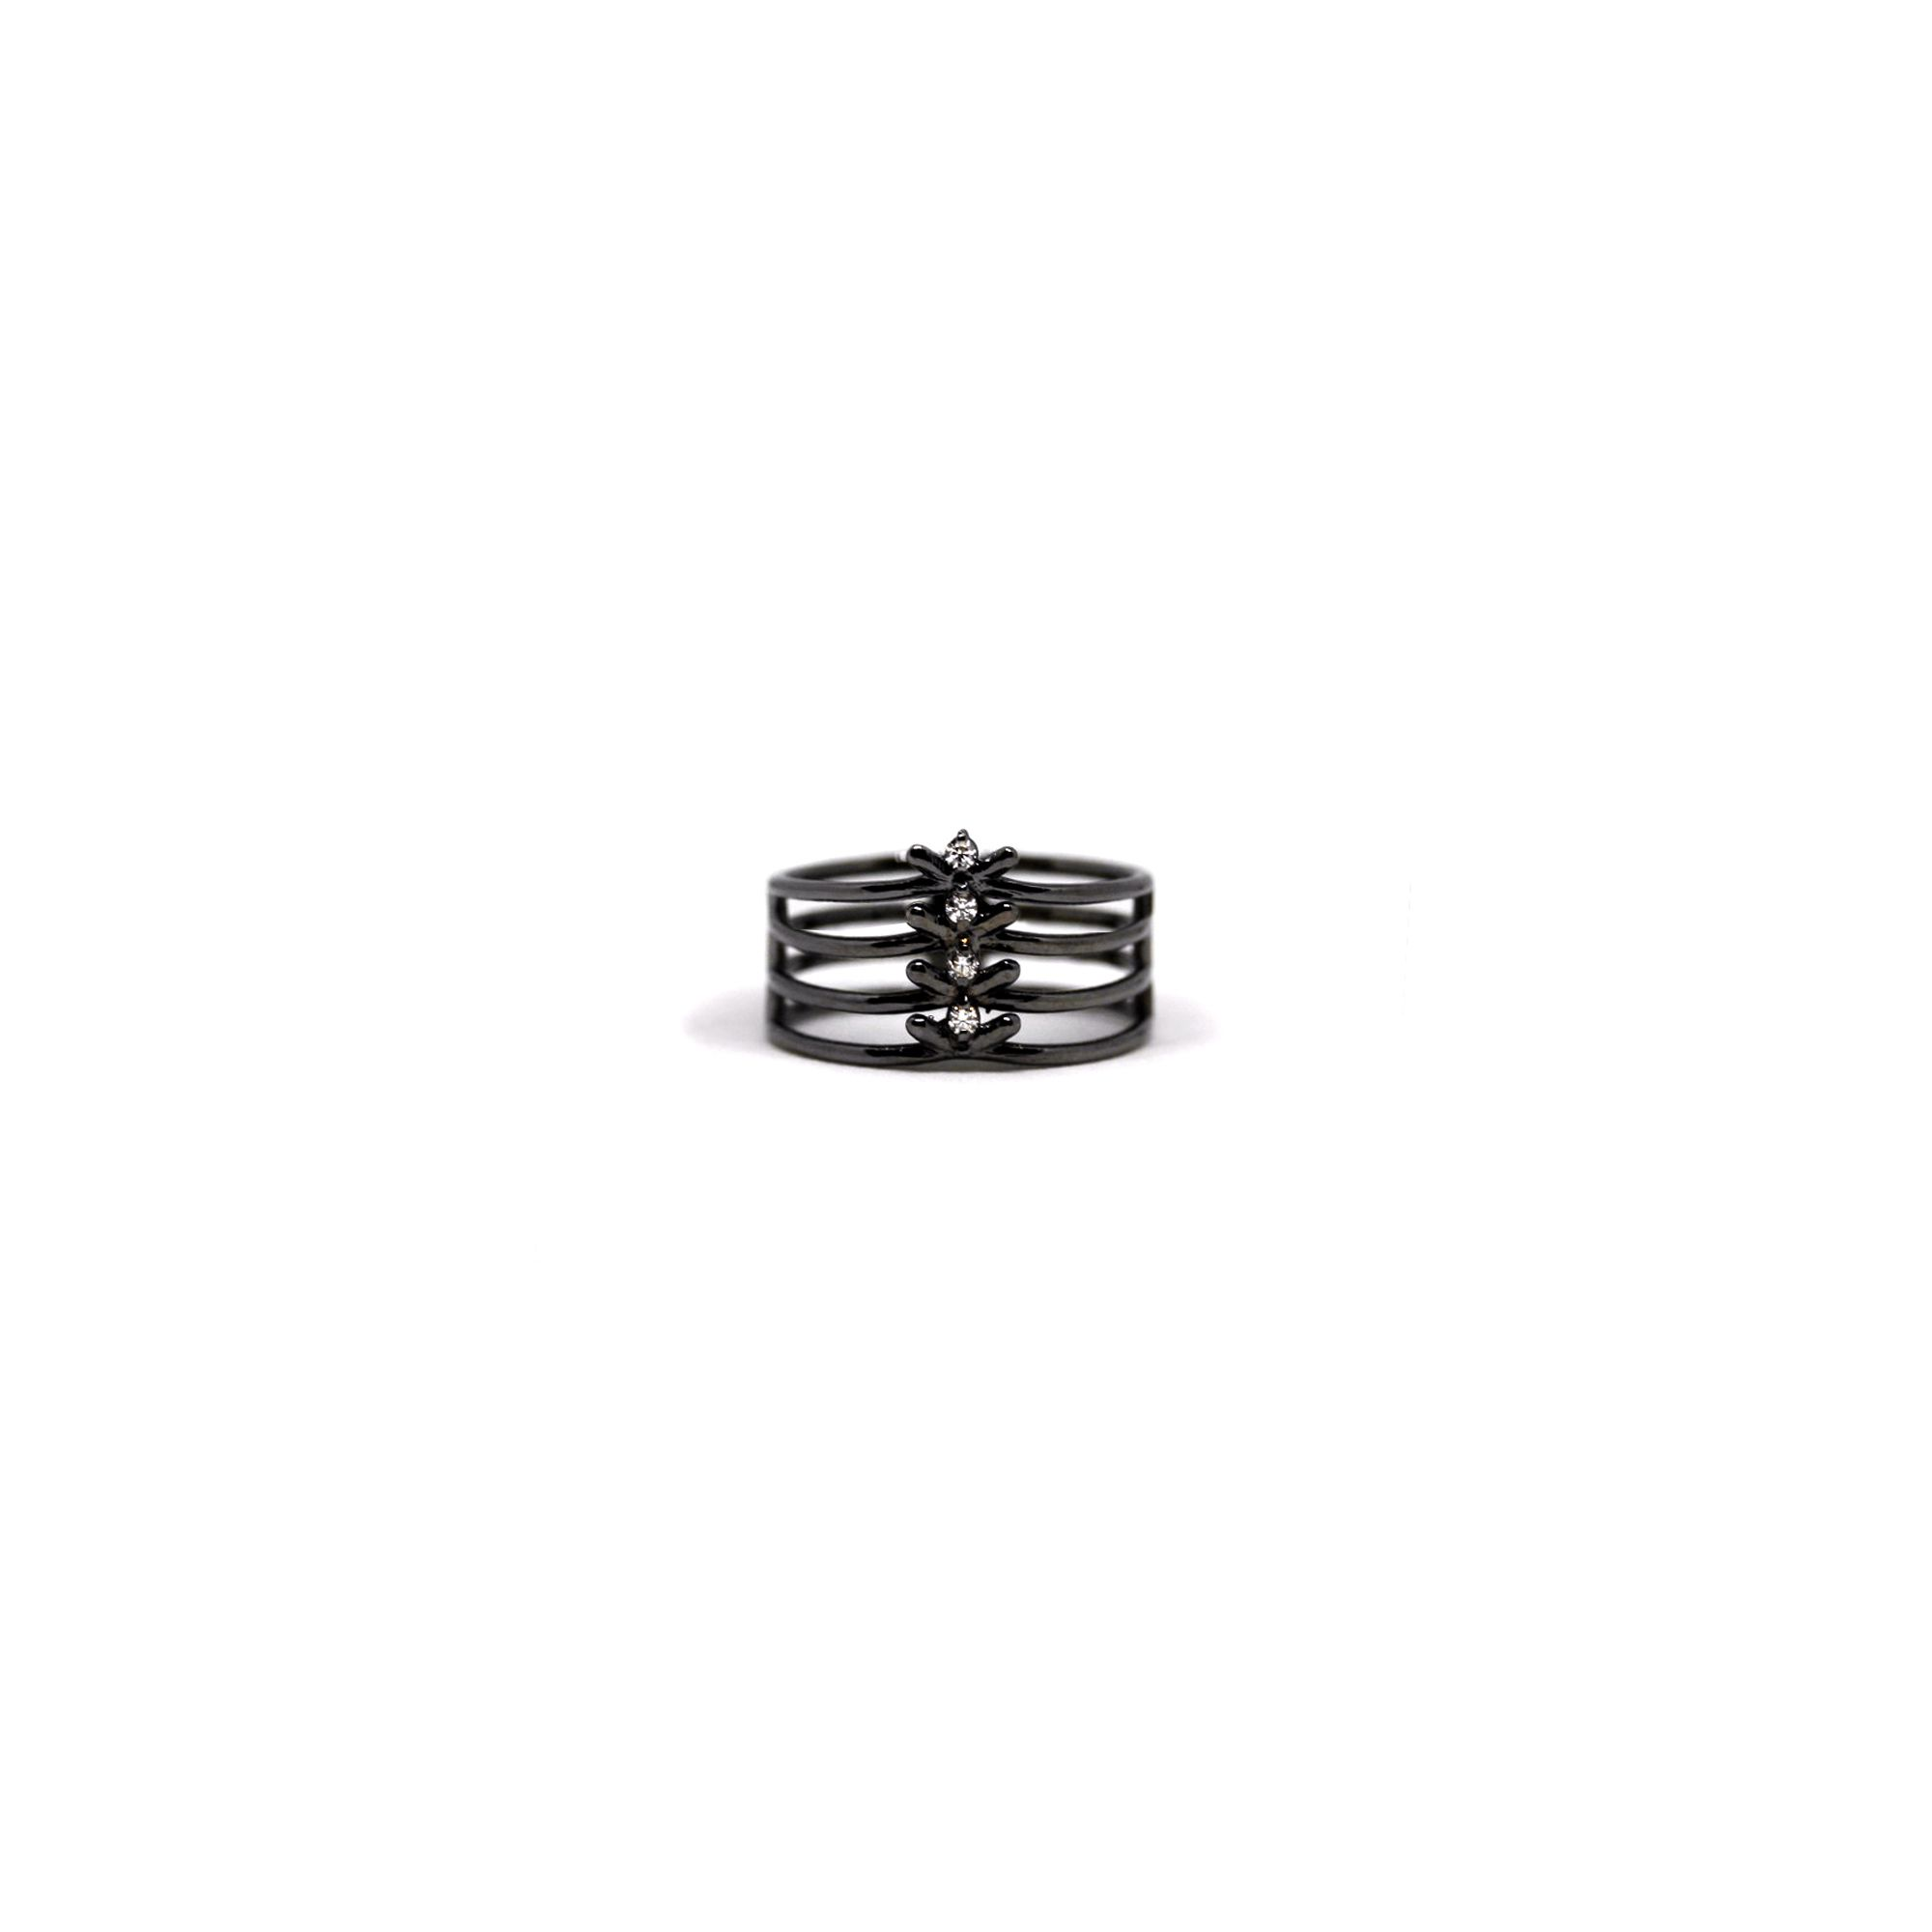 4 element 'Spiane' ring Ring in black silver